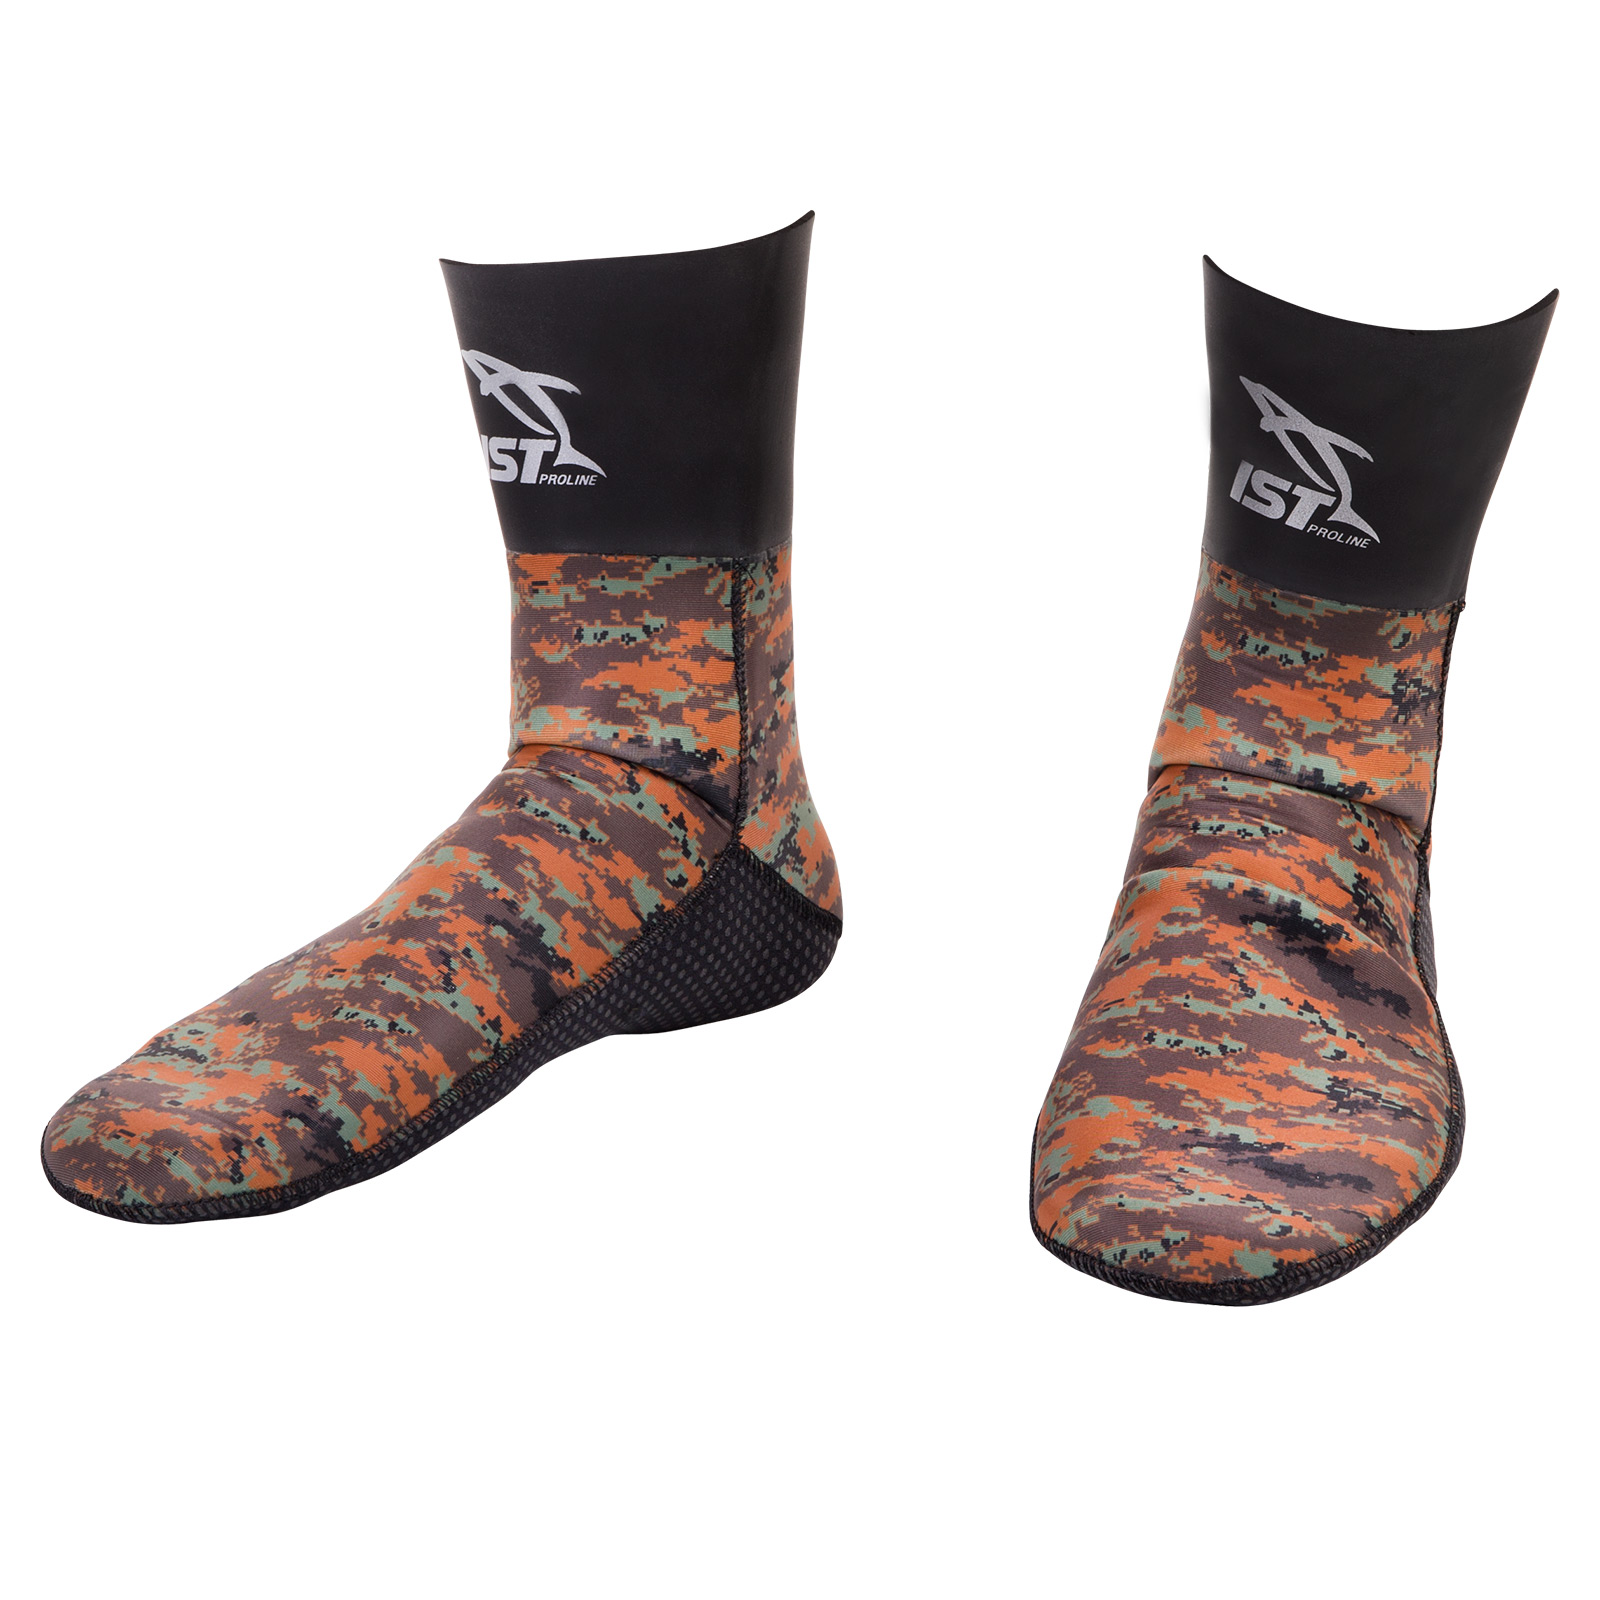 7mm Nylone Camouflage Socks